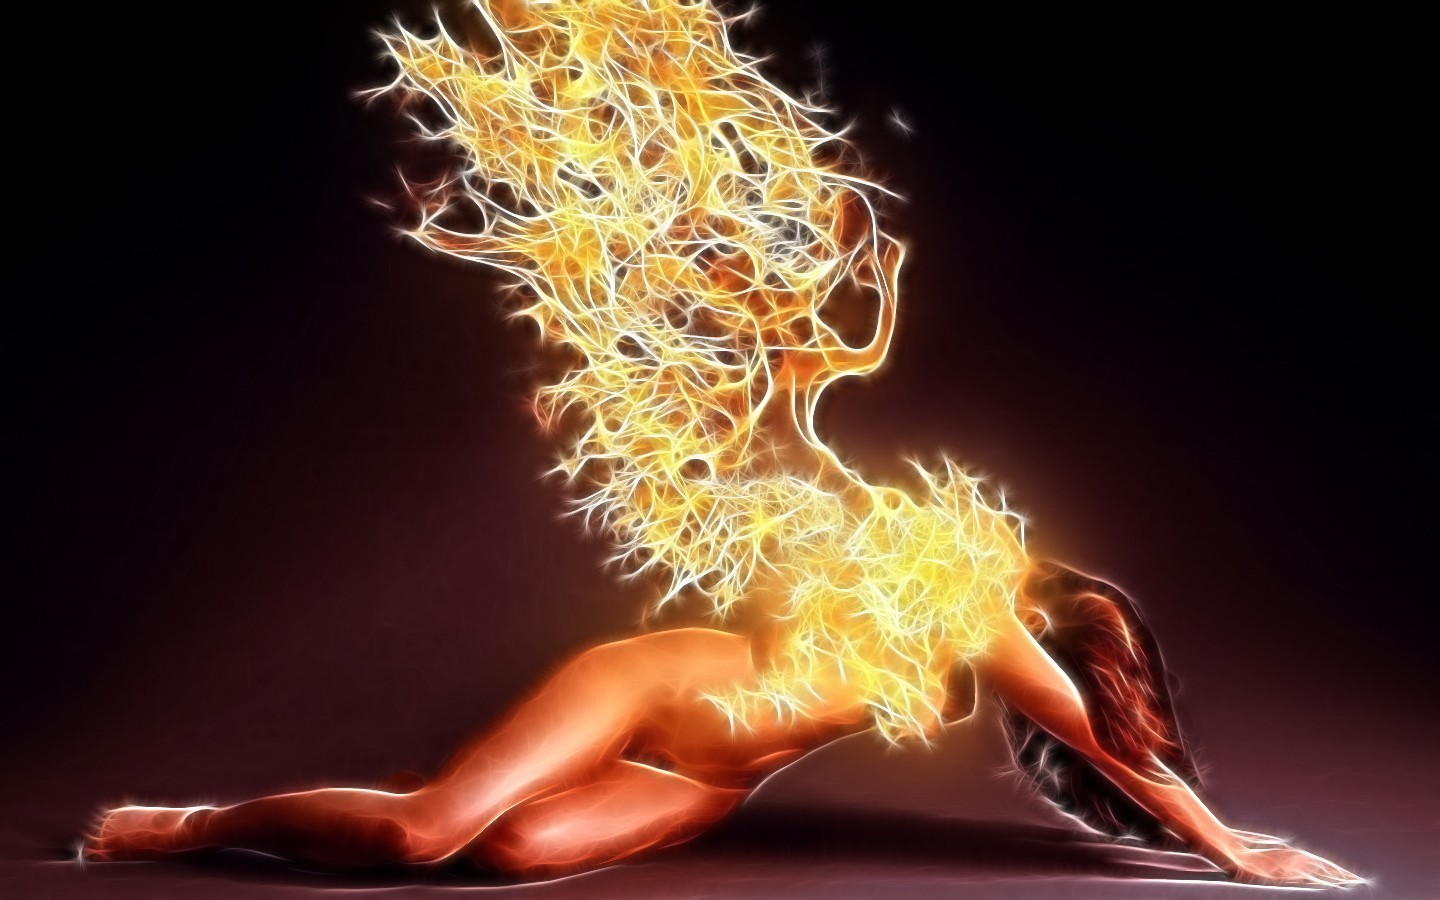 angels wings fire Fractalius HD Wallpaper